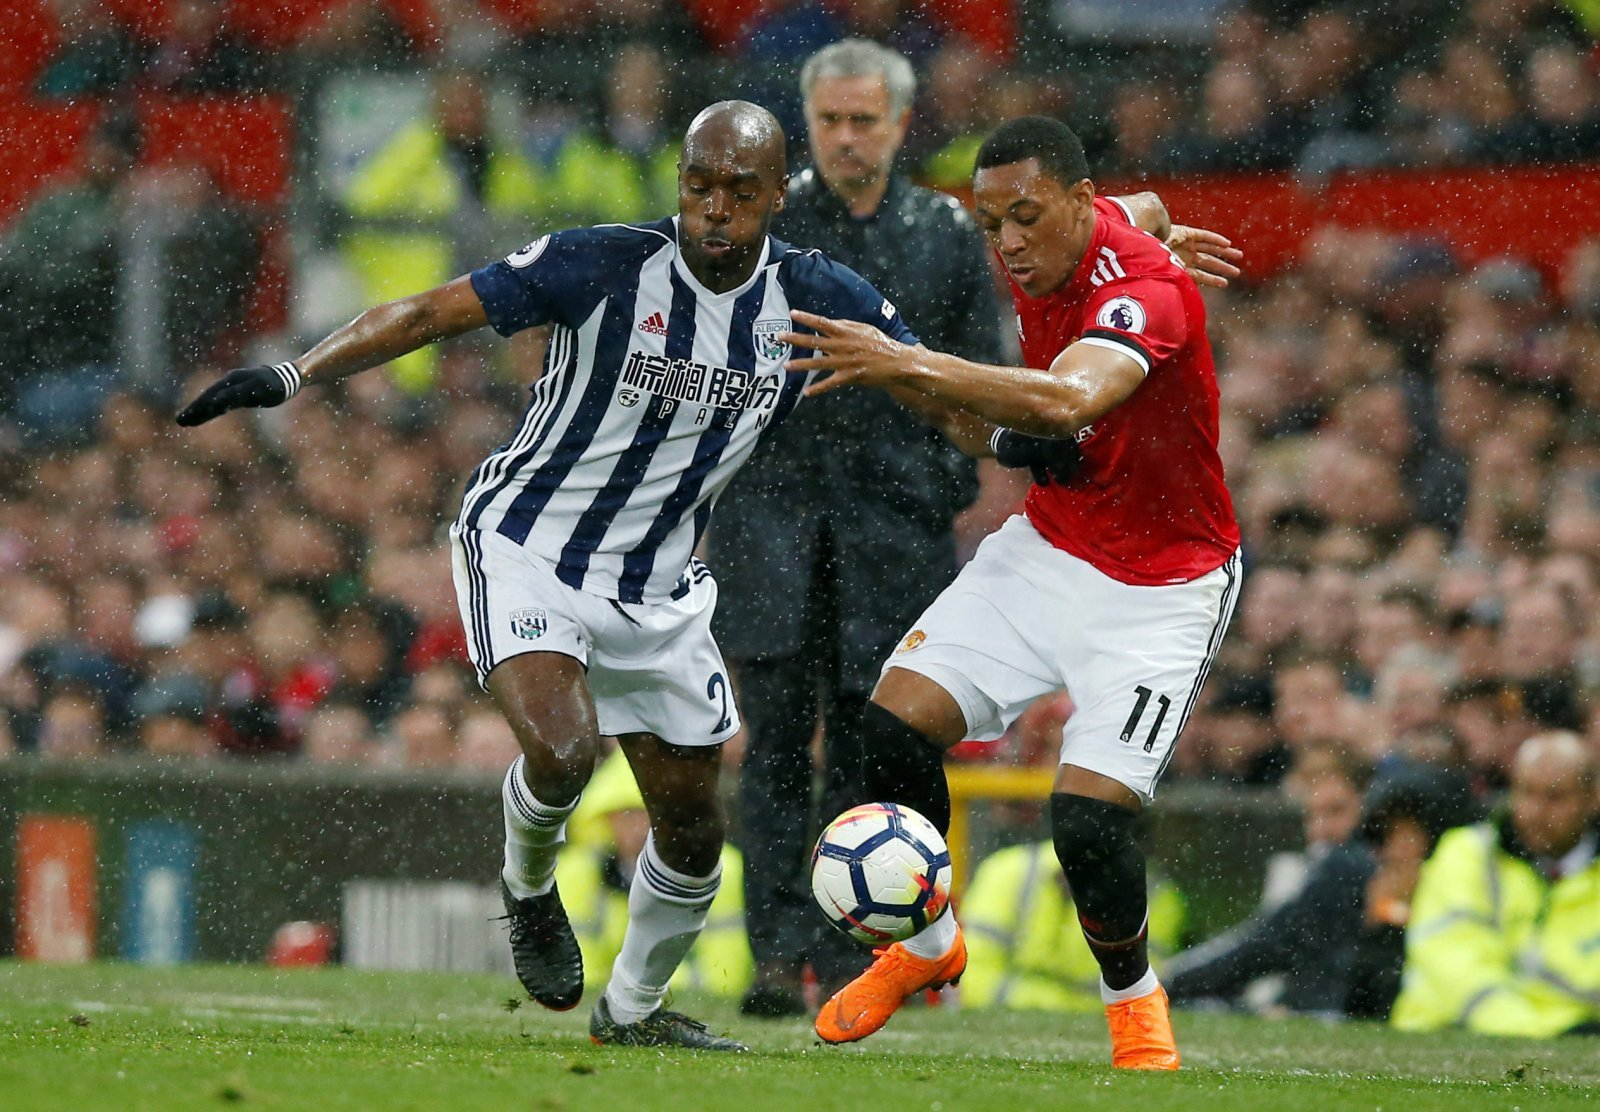 Manchester United's main objective this summer must be keeping Martial